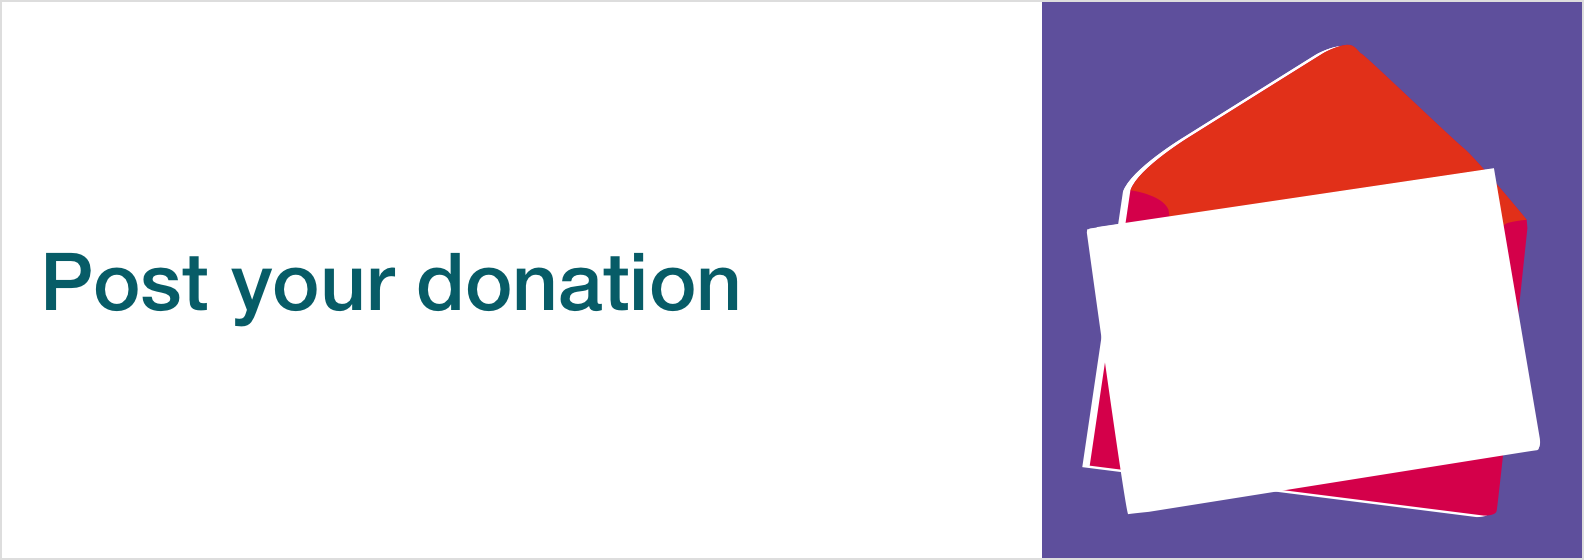 'Post your donation' in green text on a white background. Next to it is a cartoon of a letter and an envelope on a purple background.